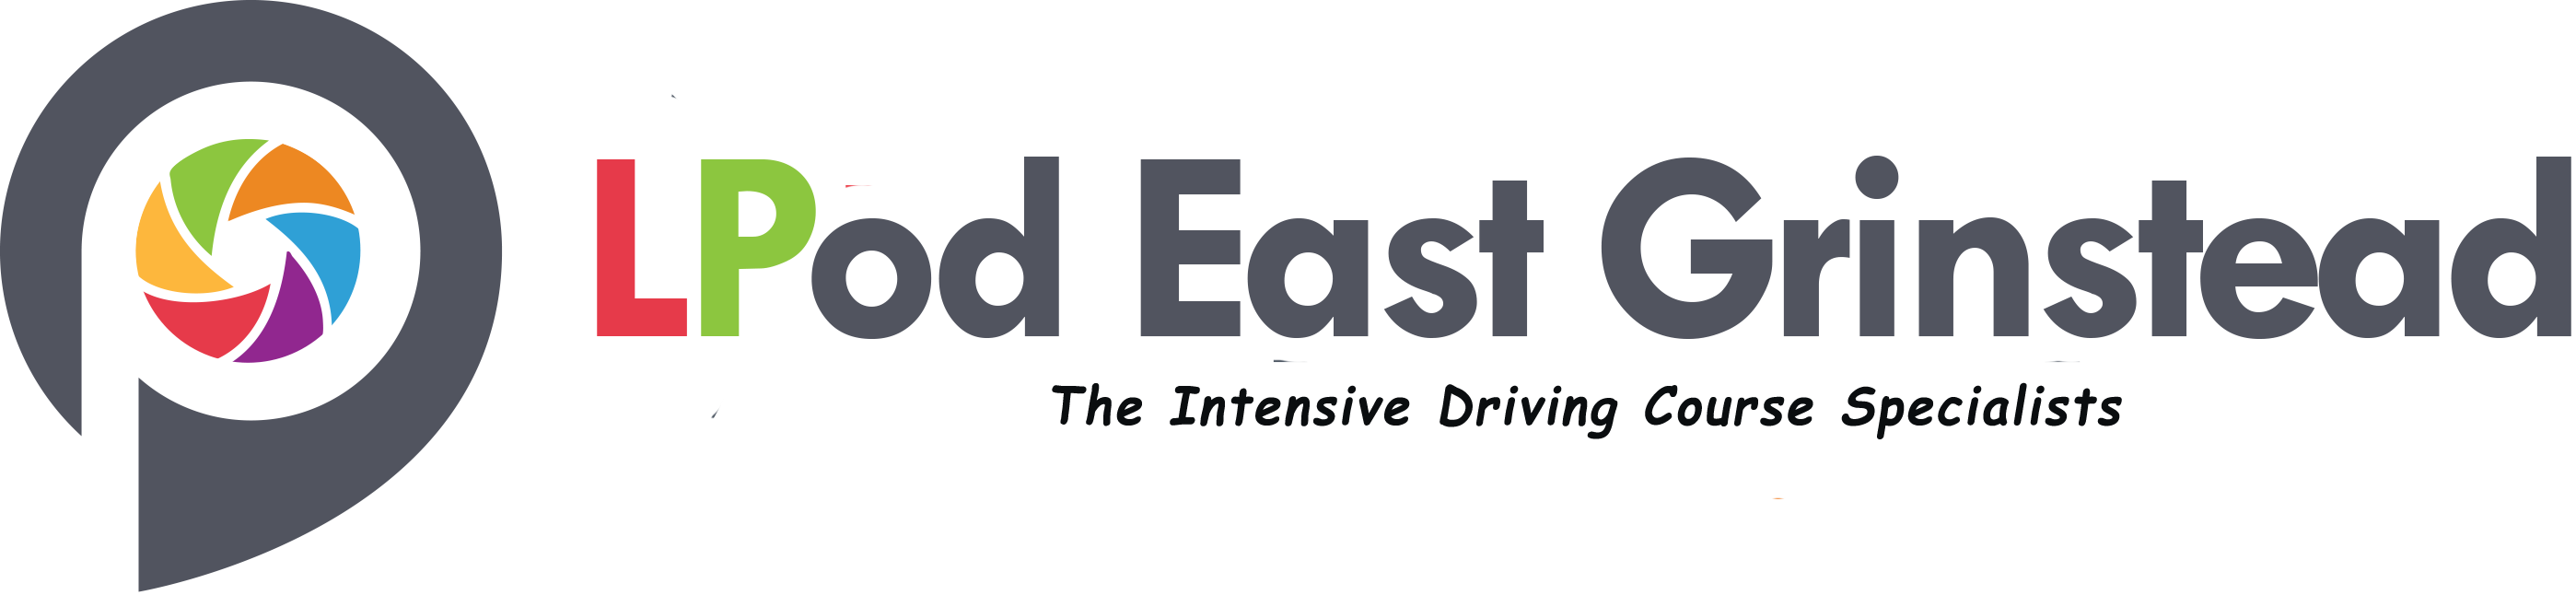 intensive driving courses east grinstead, one week driving courses grinstead, fast pass driving courses east grinstead